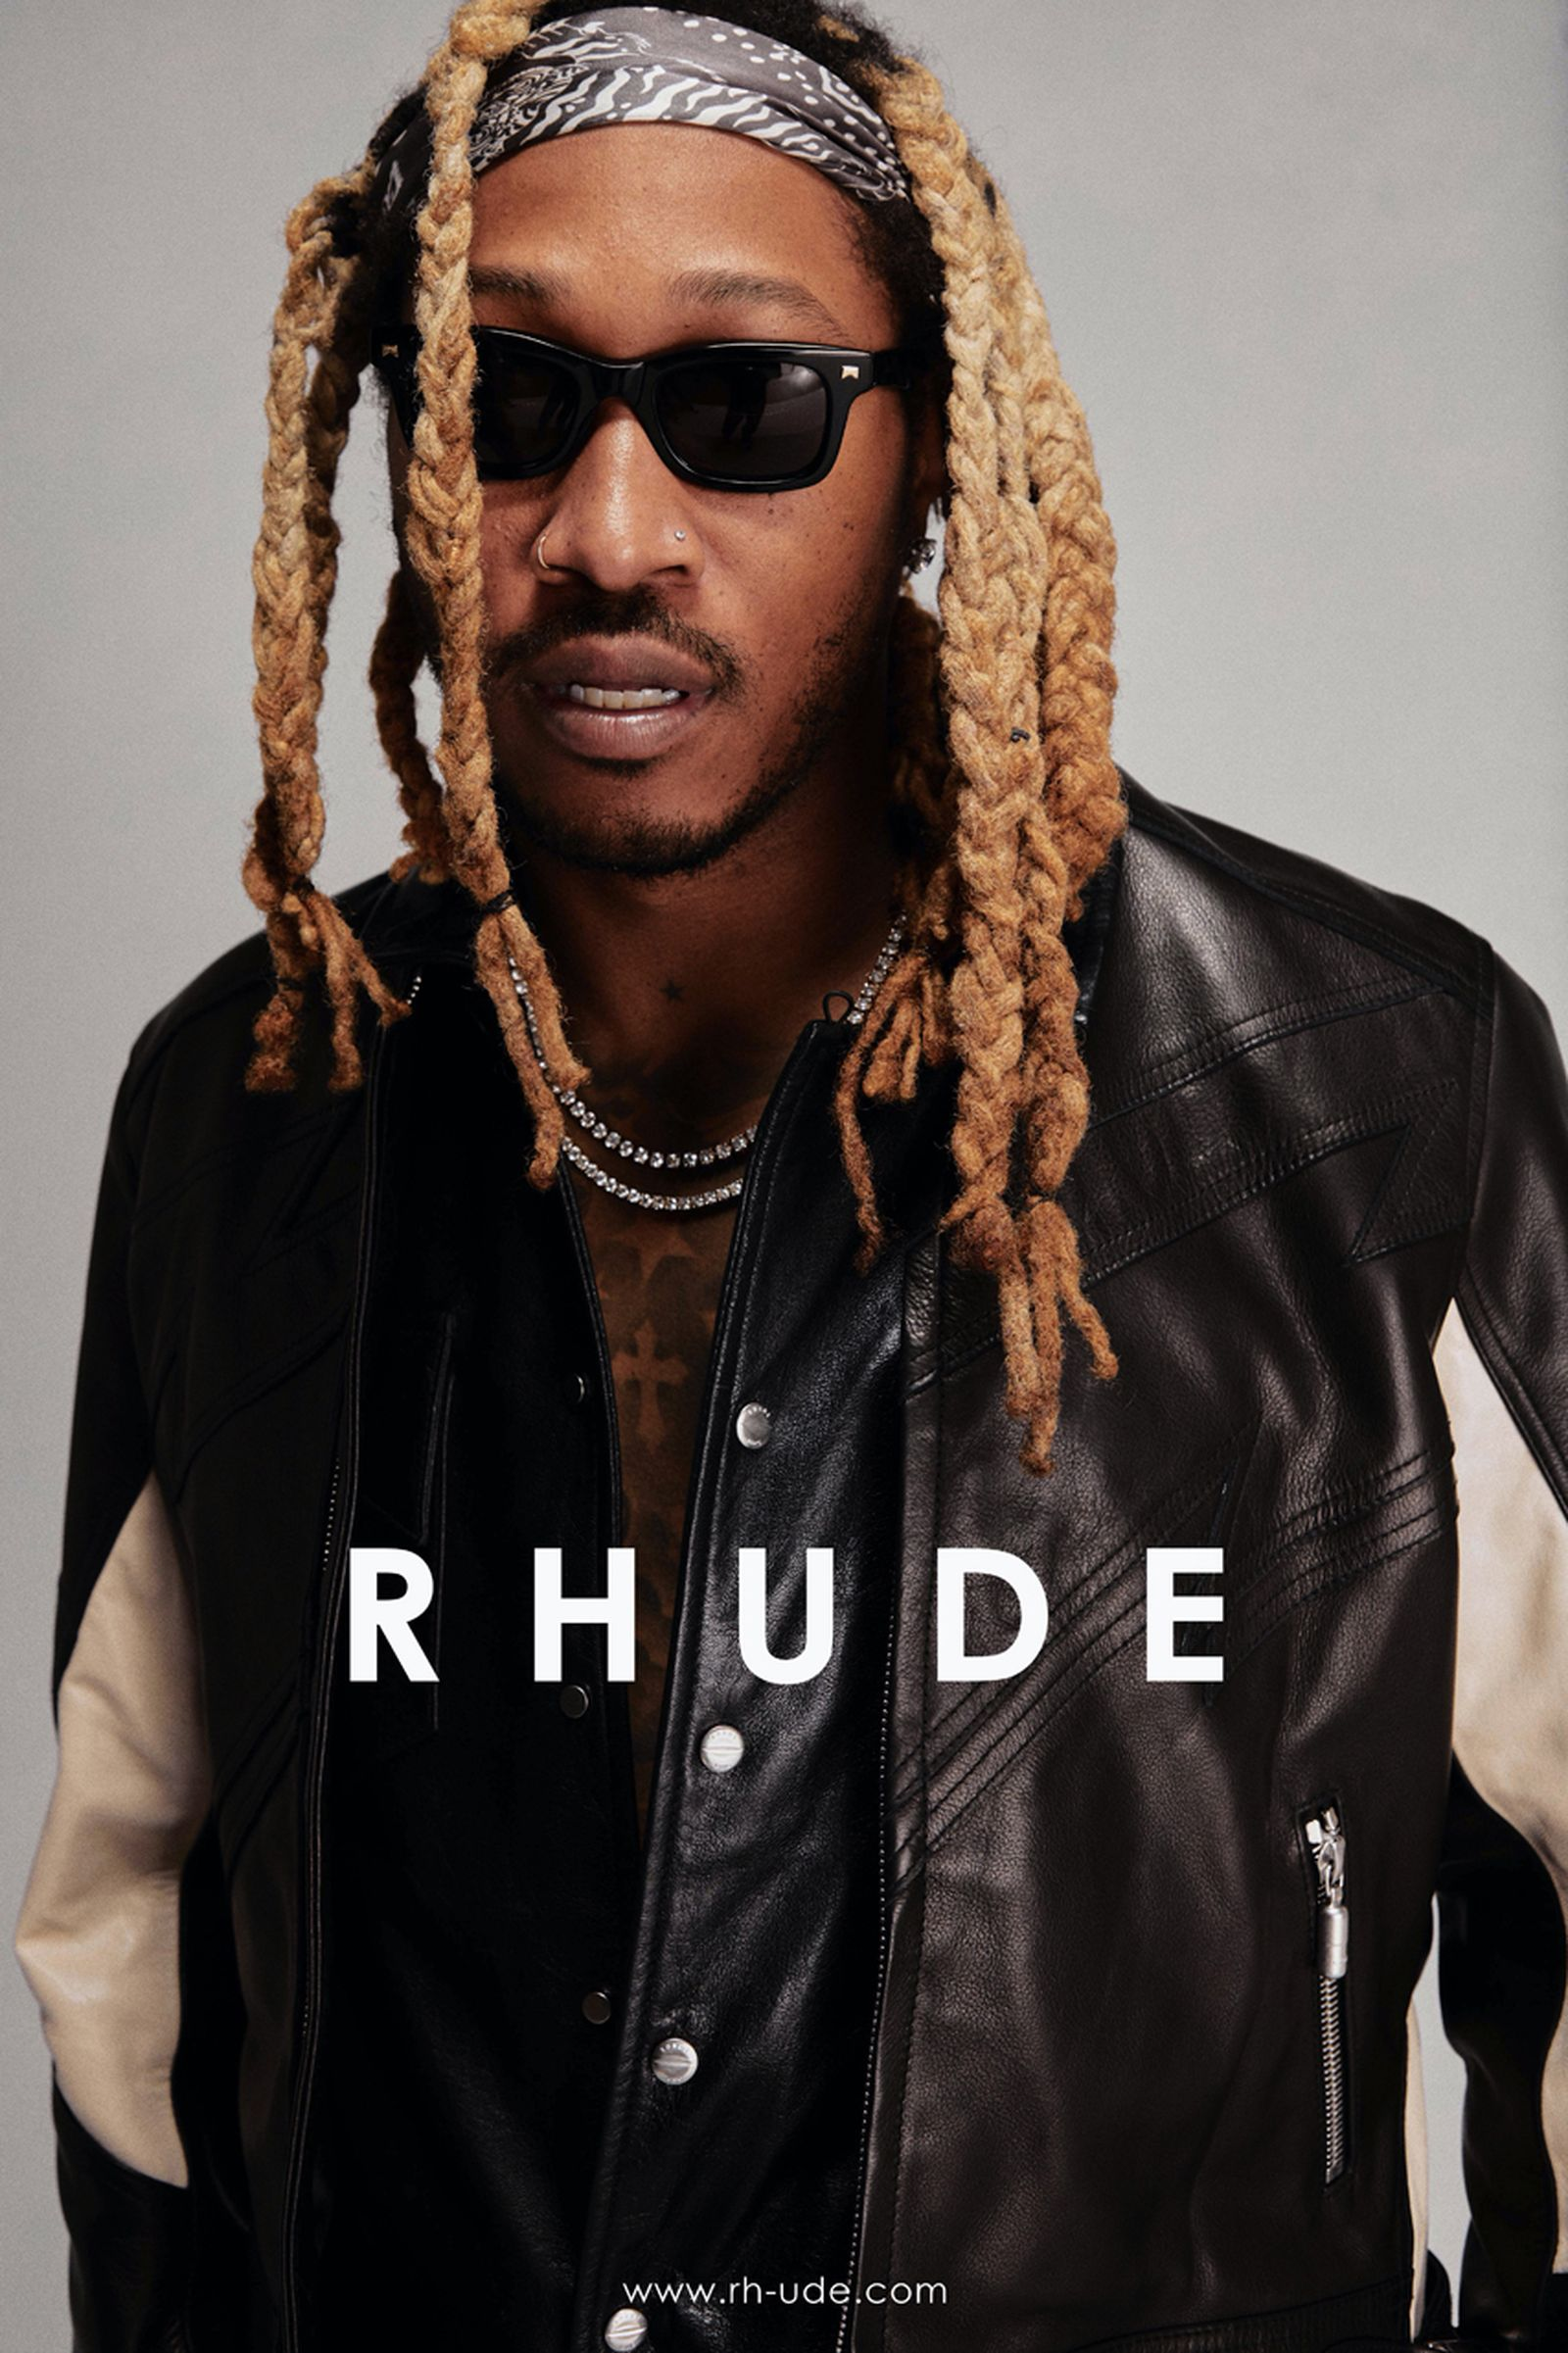 future-fronts-new-rhude-campaign-4